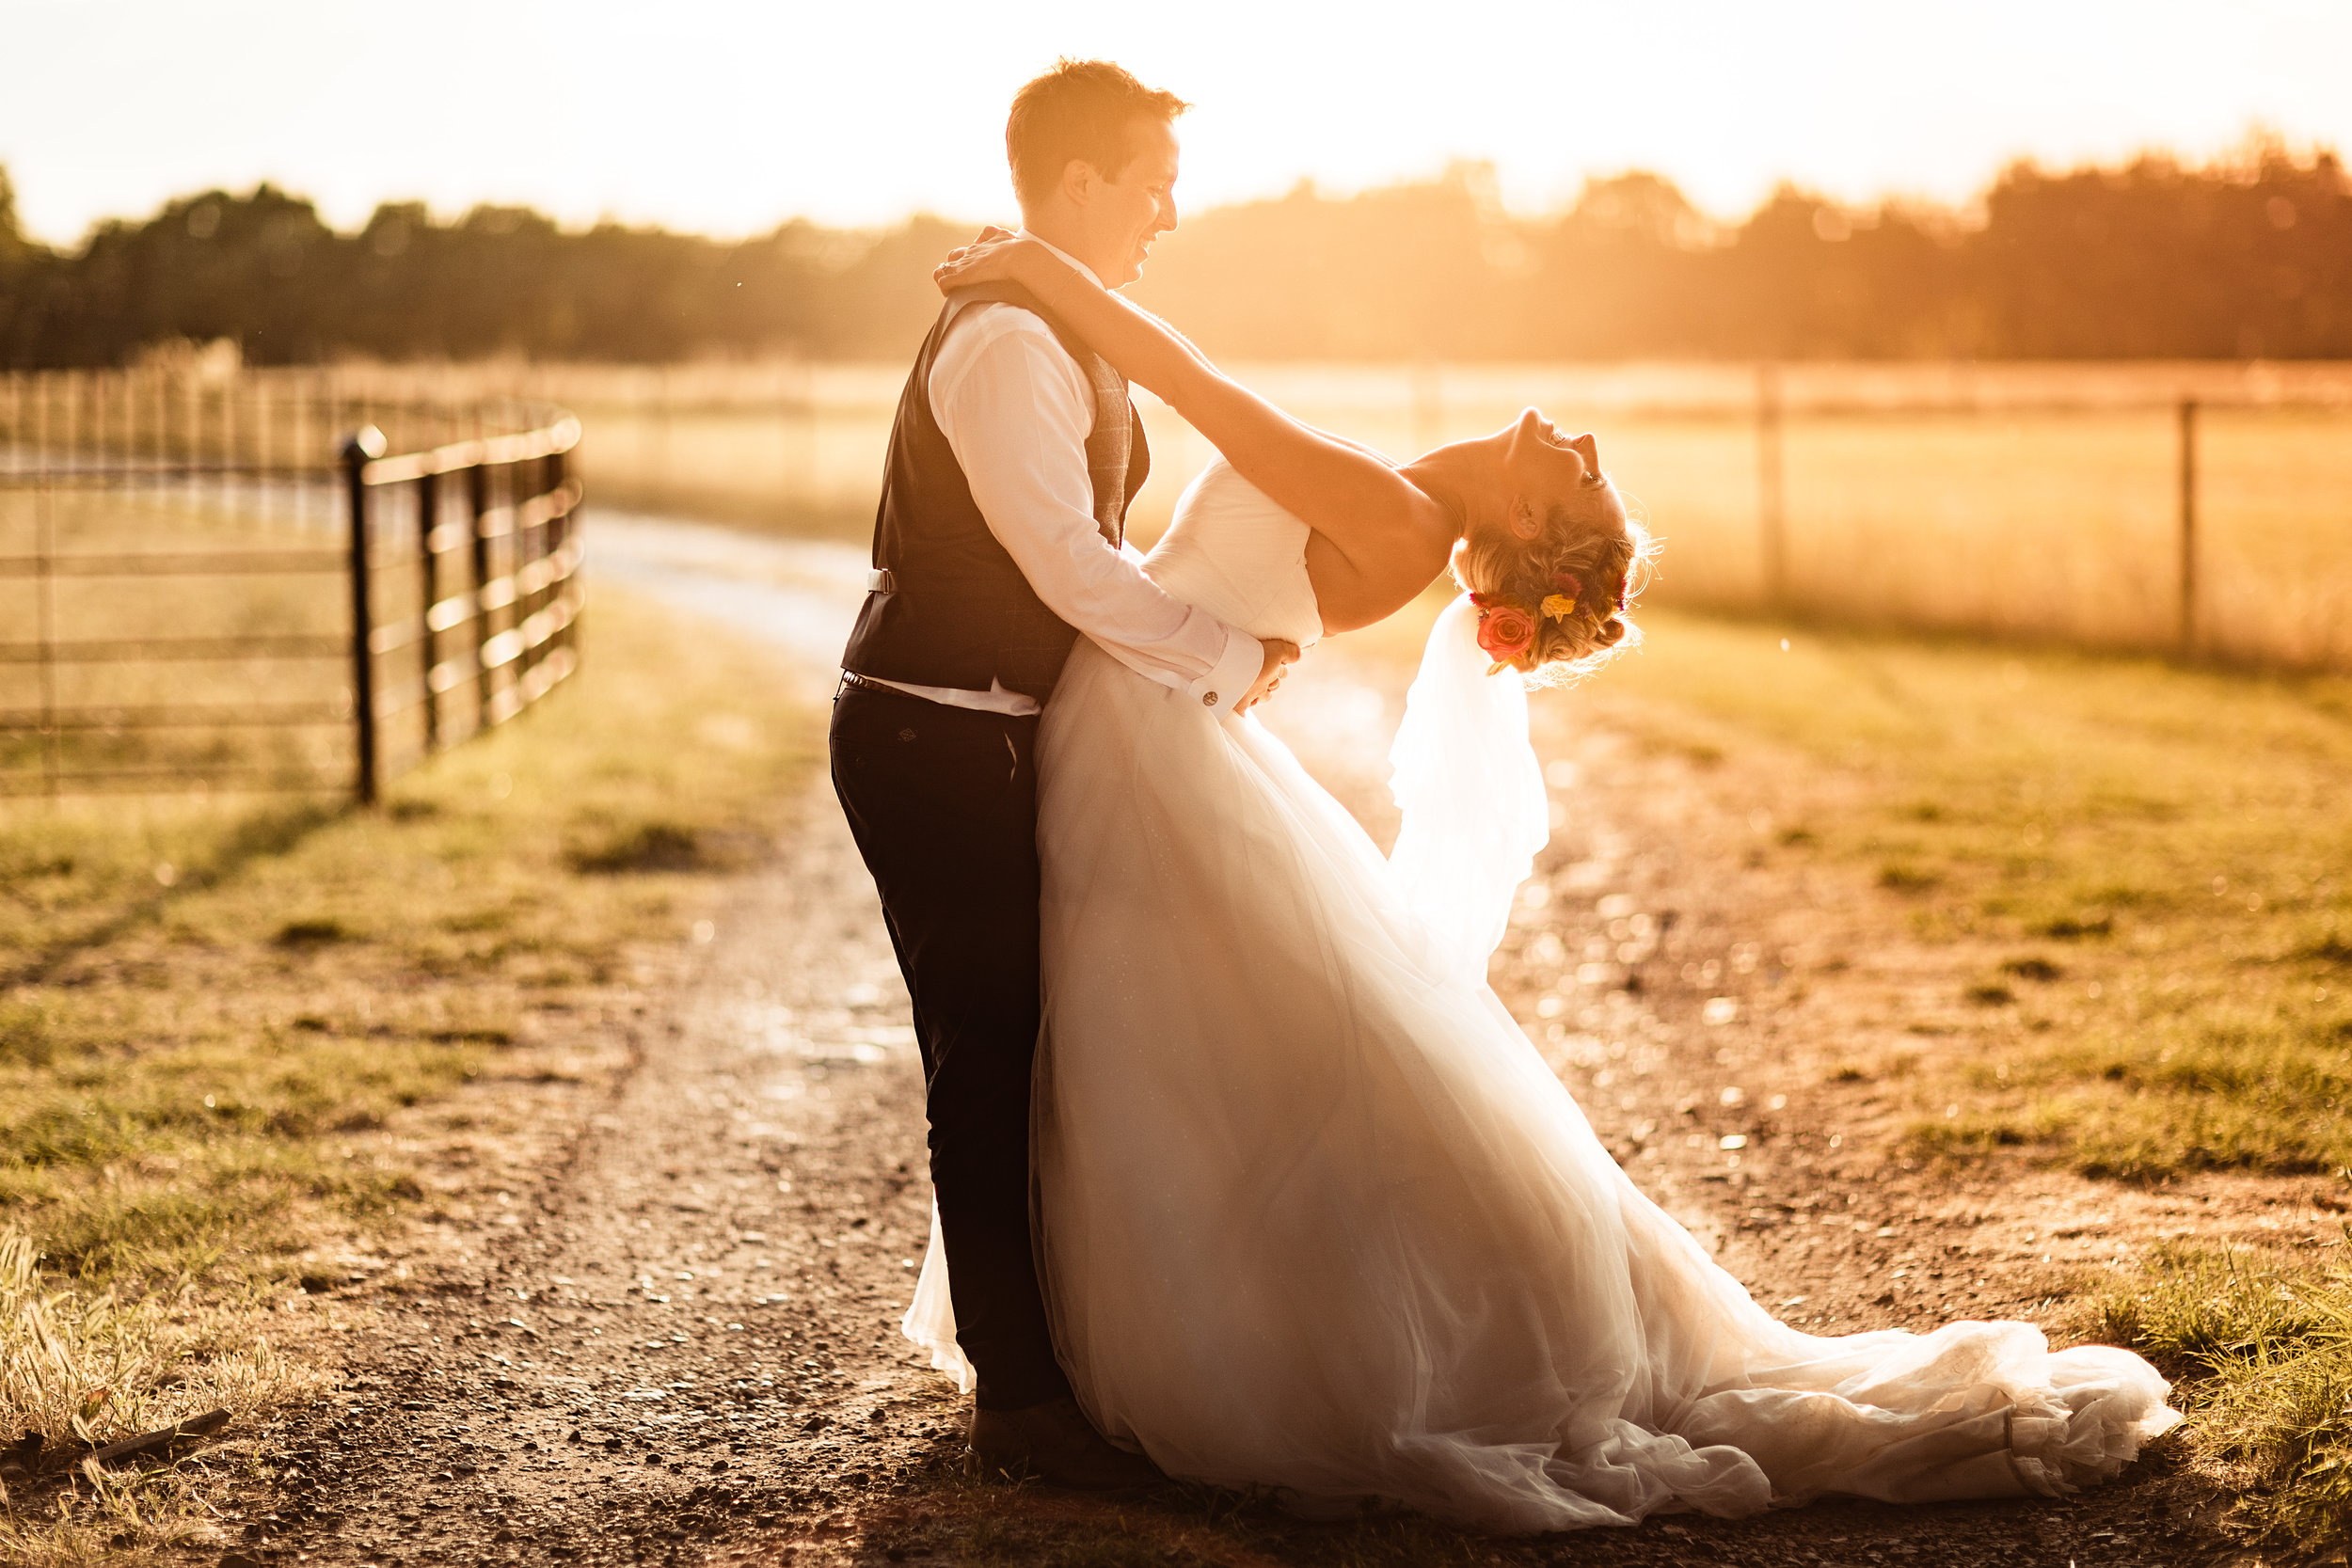 A bride throwing her head back as the groom holds her at sunset in a field